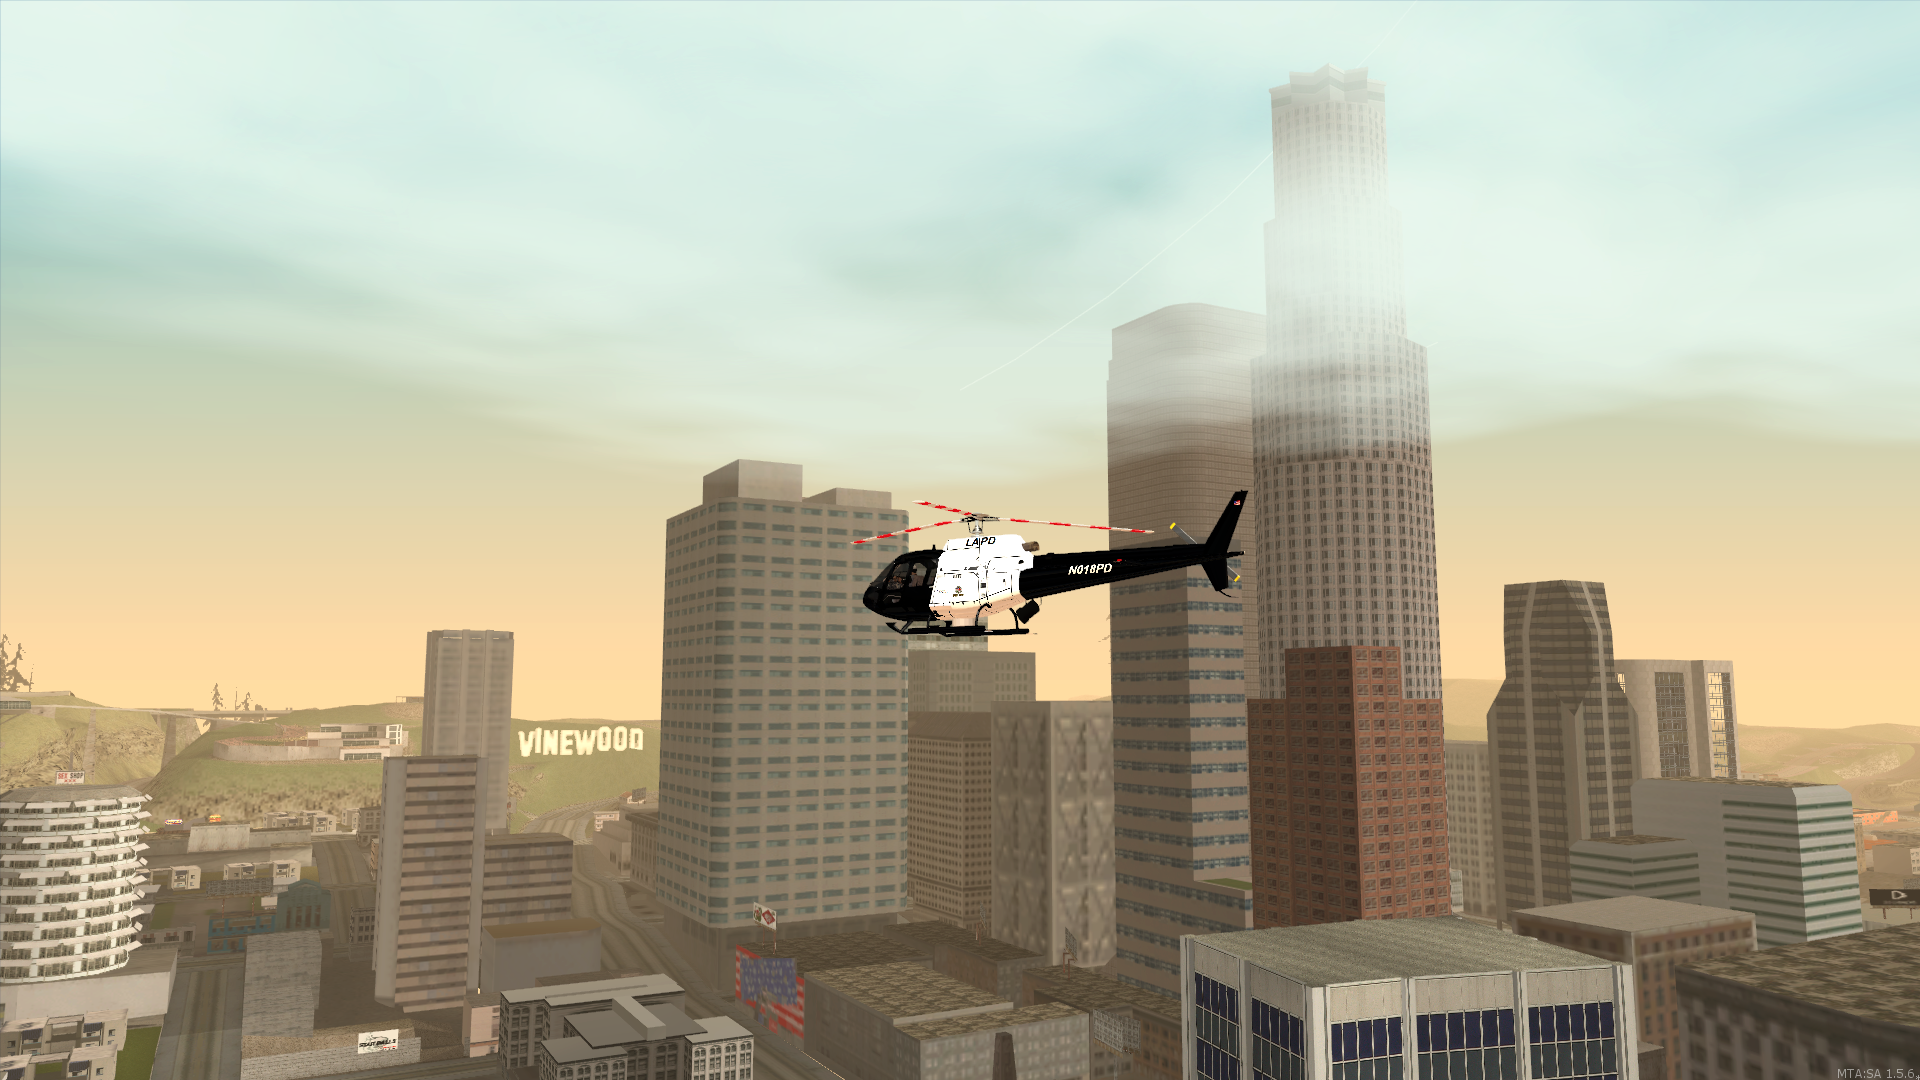 Los Santos Police Department Air Support Division - posted by MaXKillS